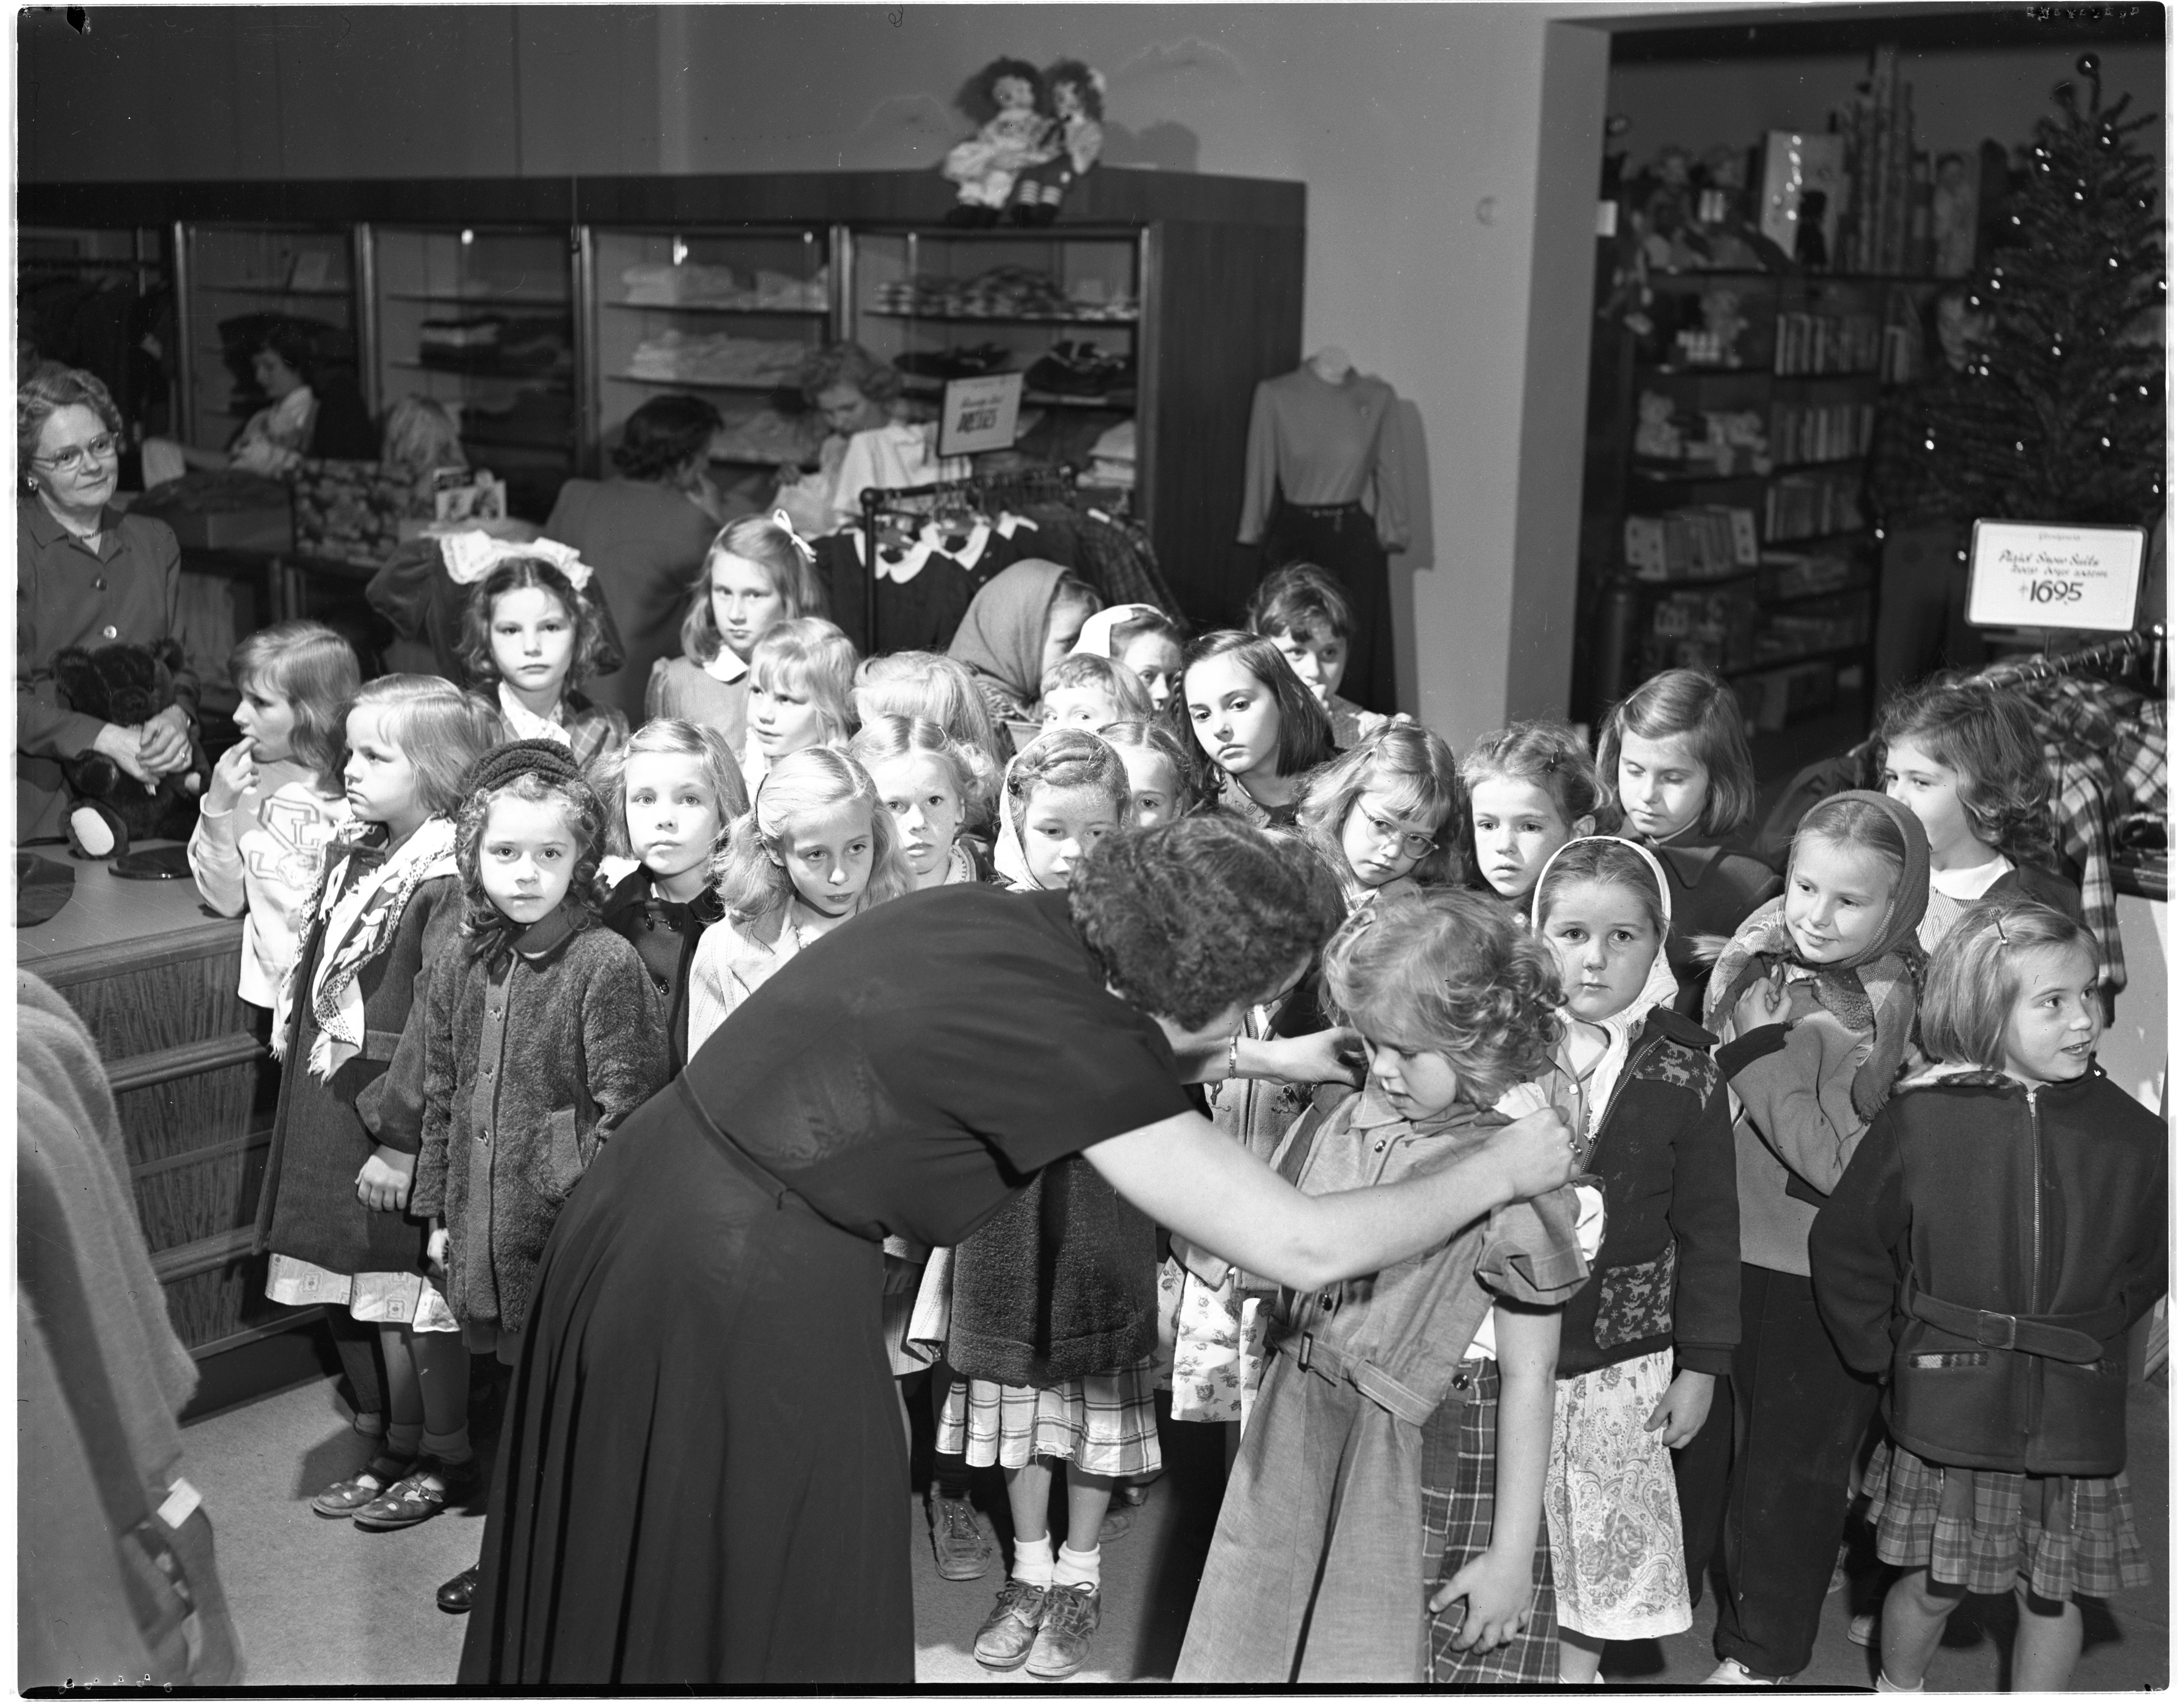 Pittsfield Girl Scouts Wait To Be Measured For New Uniforms At Goodyears, September 1949 image